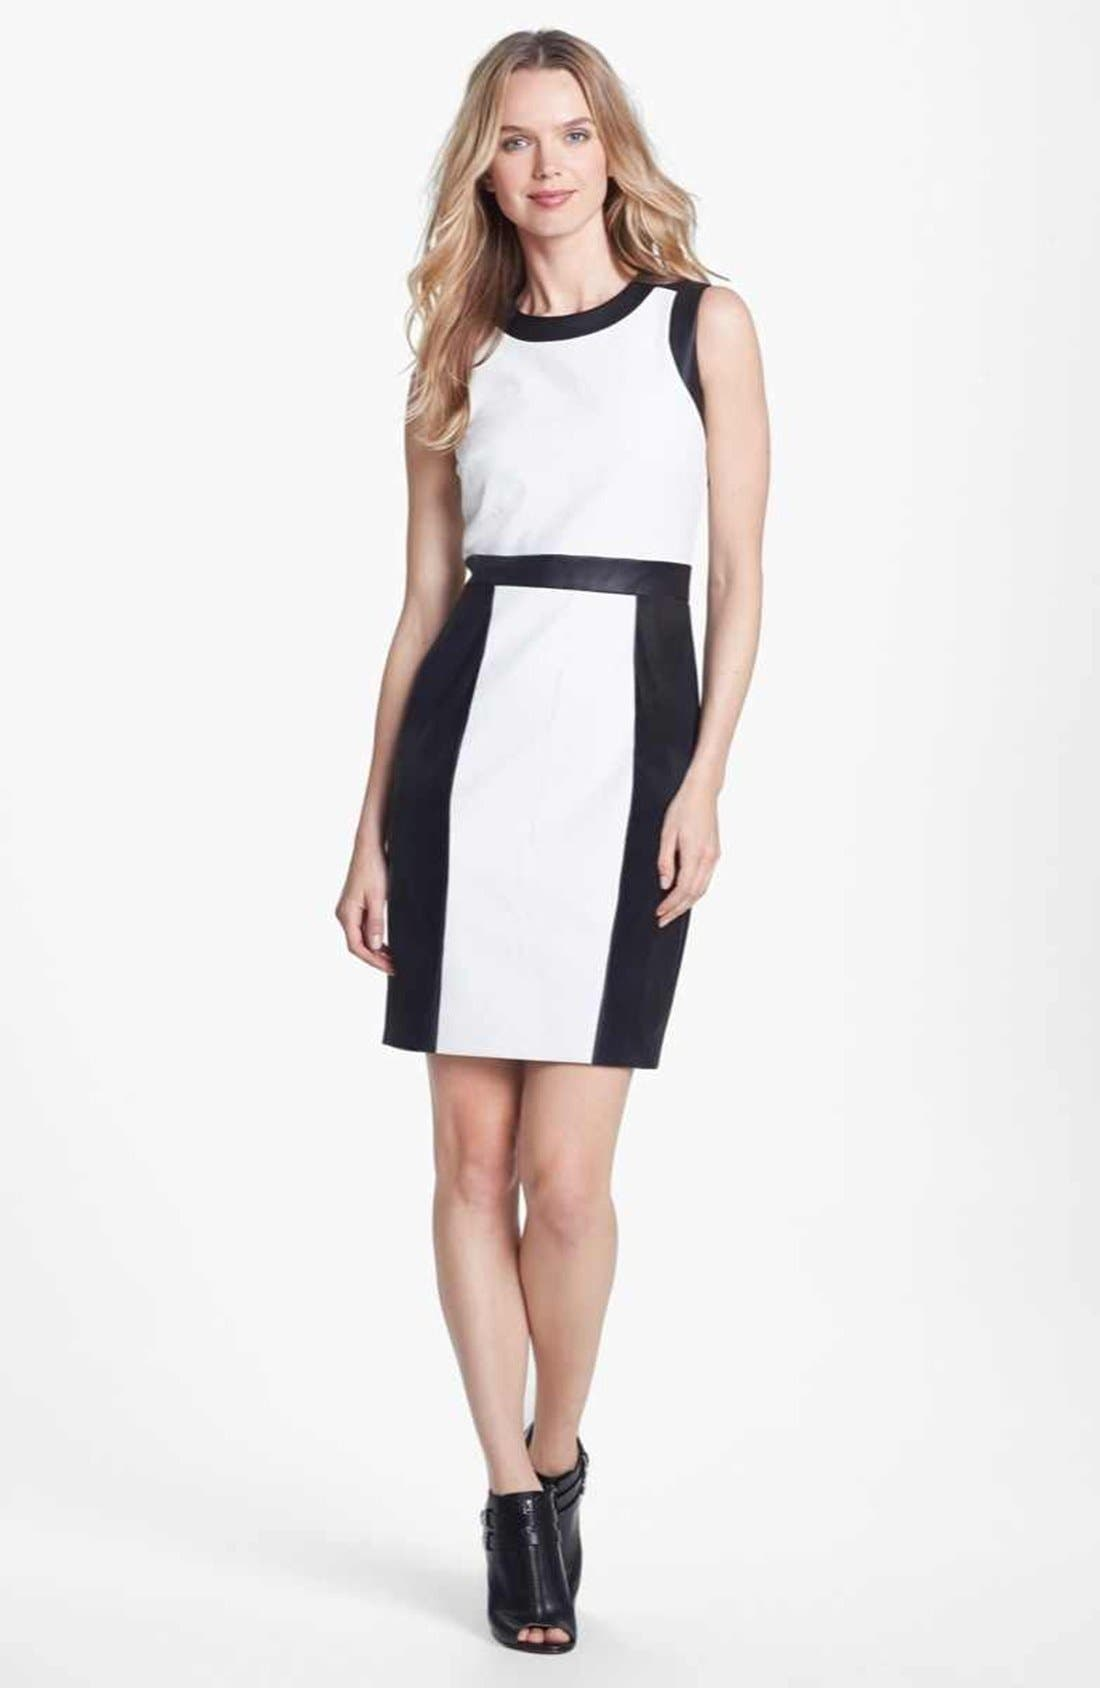 Alternate Image 1 Selected - Vince Camuto Colorblock Perforated Faux Leather Sheath Dress